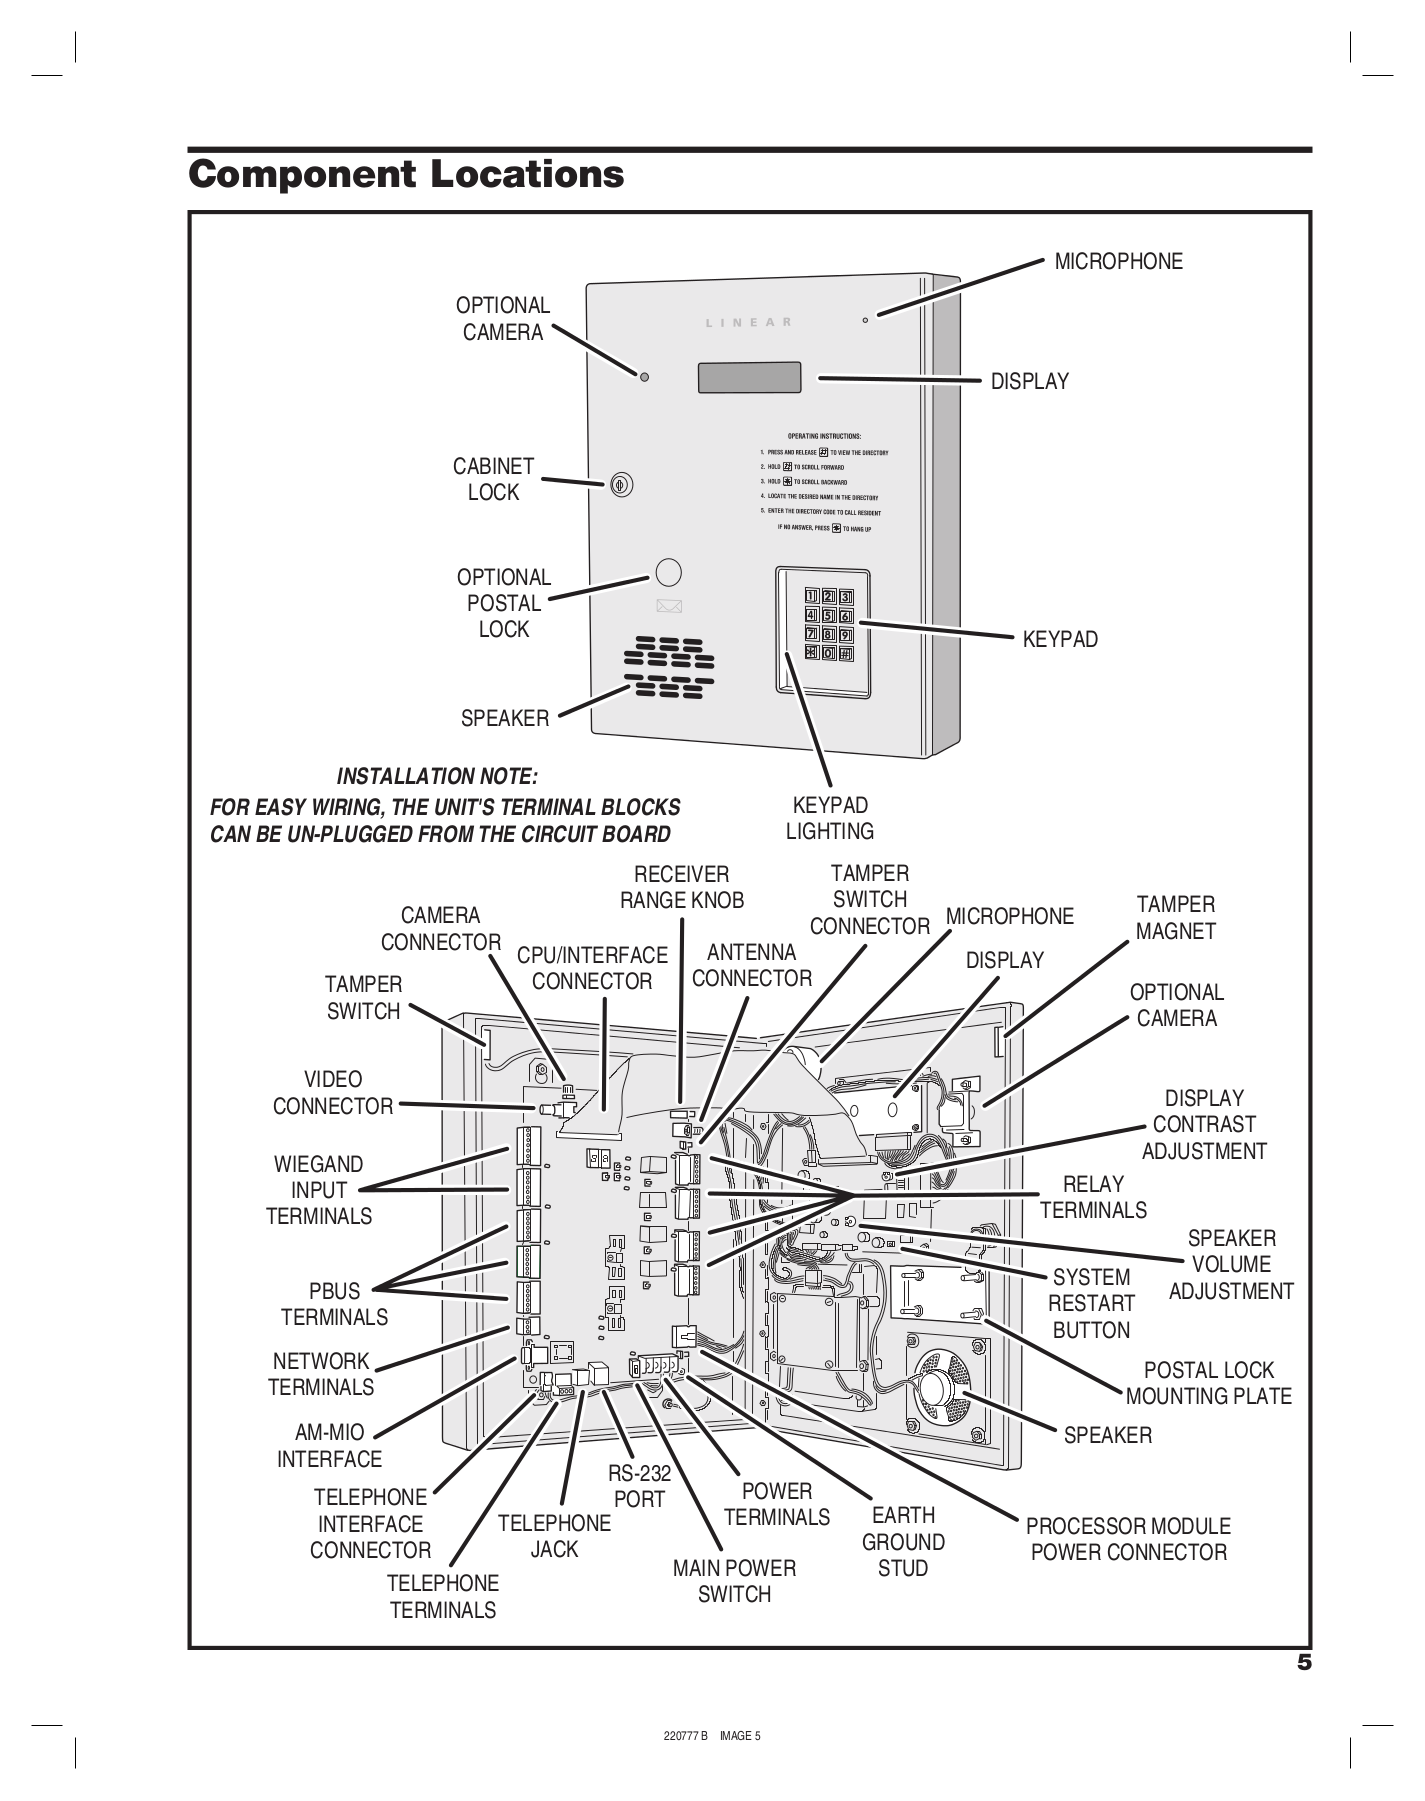 Linear_AE 1000_Manual_Commercial_Access_Control_up_to_4_Gate_Entry.pdf 4 pdf manual for philips radio ae1000  at alyssarenee.co